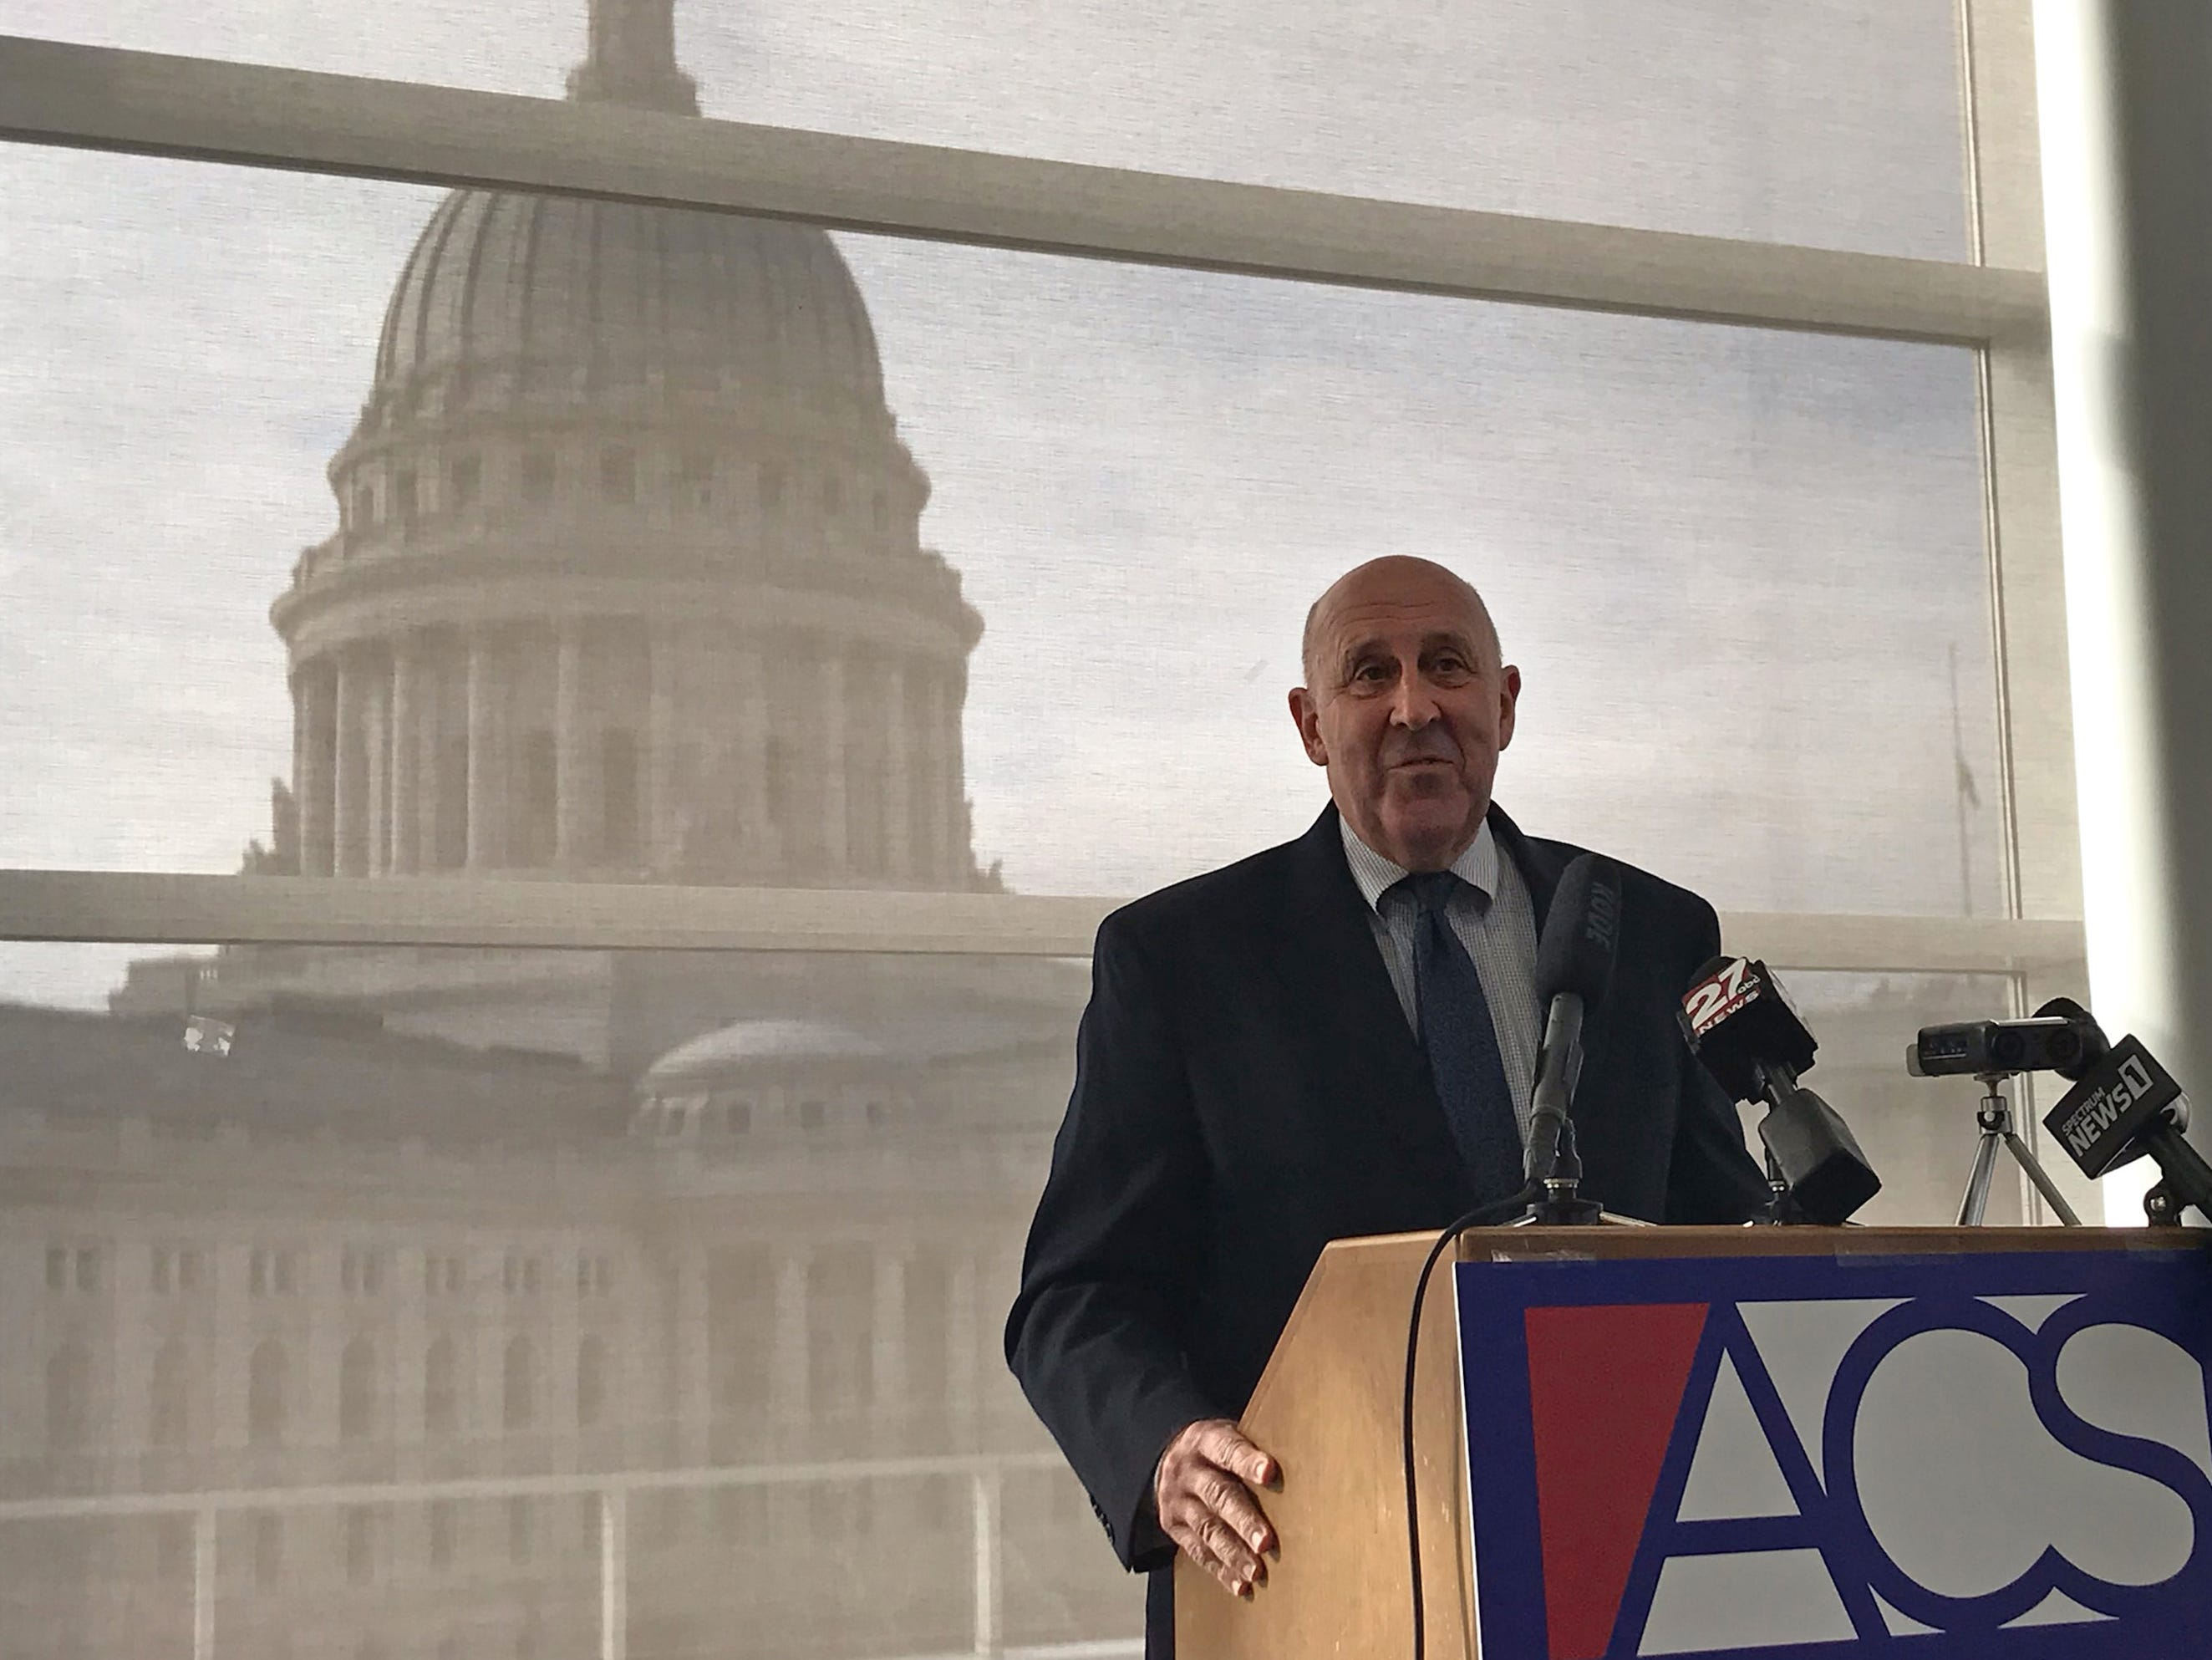 Former Wisconsin Gov. and Attorney General Jim Doyle on Tuesday blasted plans by the Republican Legislature to diminish the powers of Gov.-elect Tony Evers and Attorney General-elect Josh Kaul.